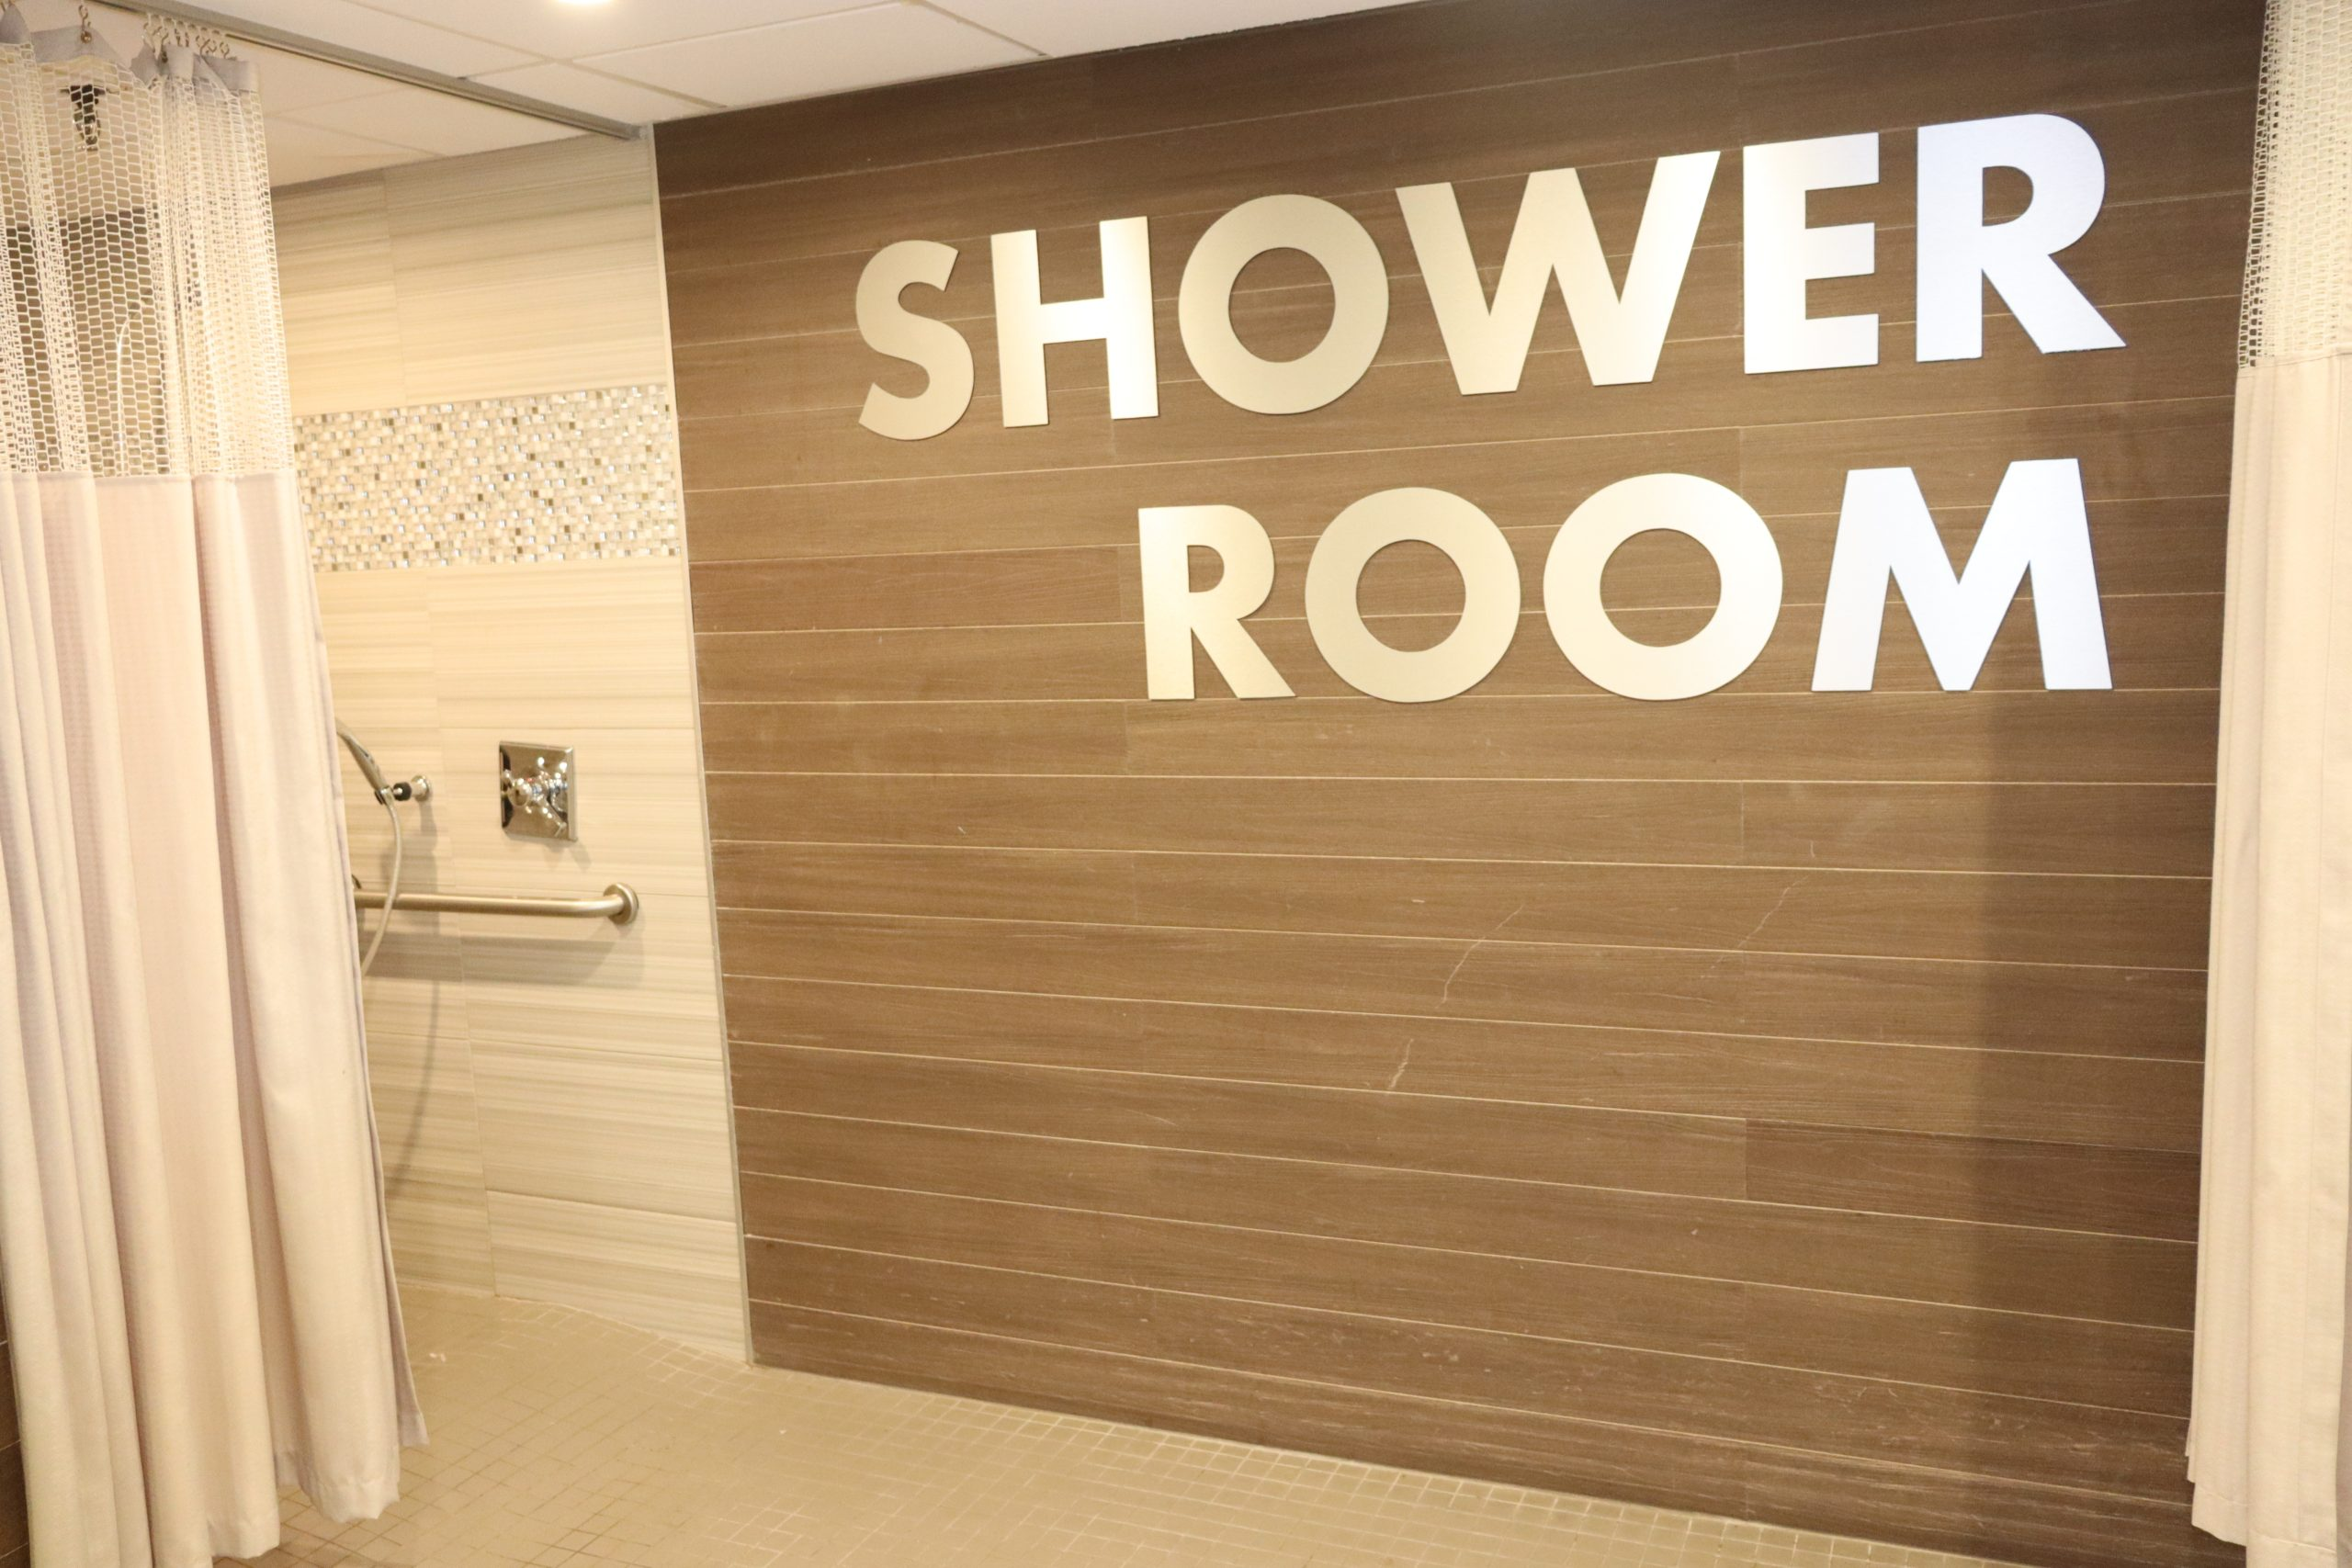 Sign leading to shower room